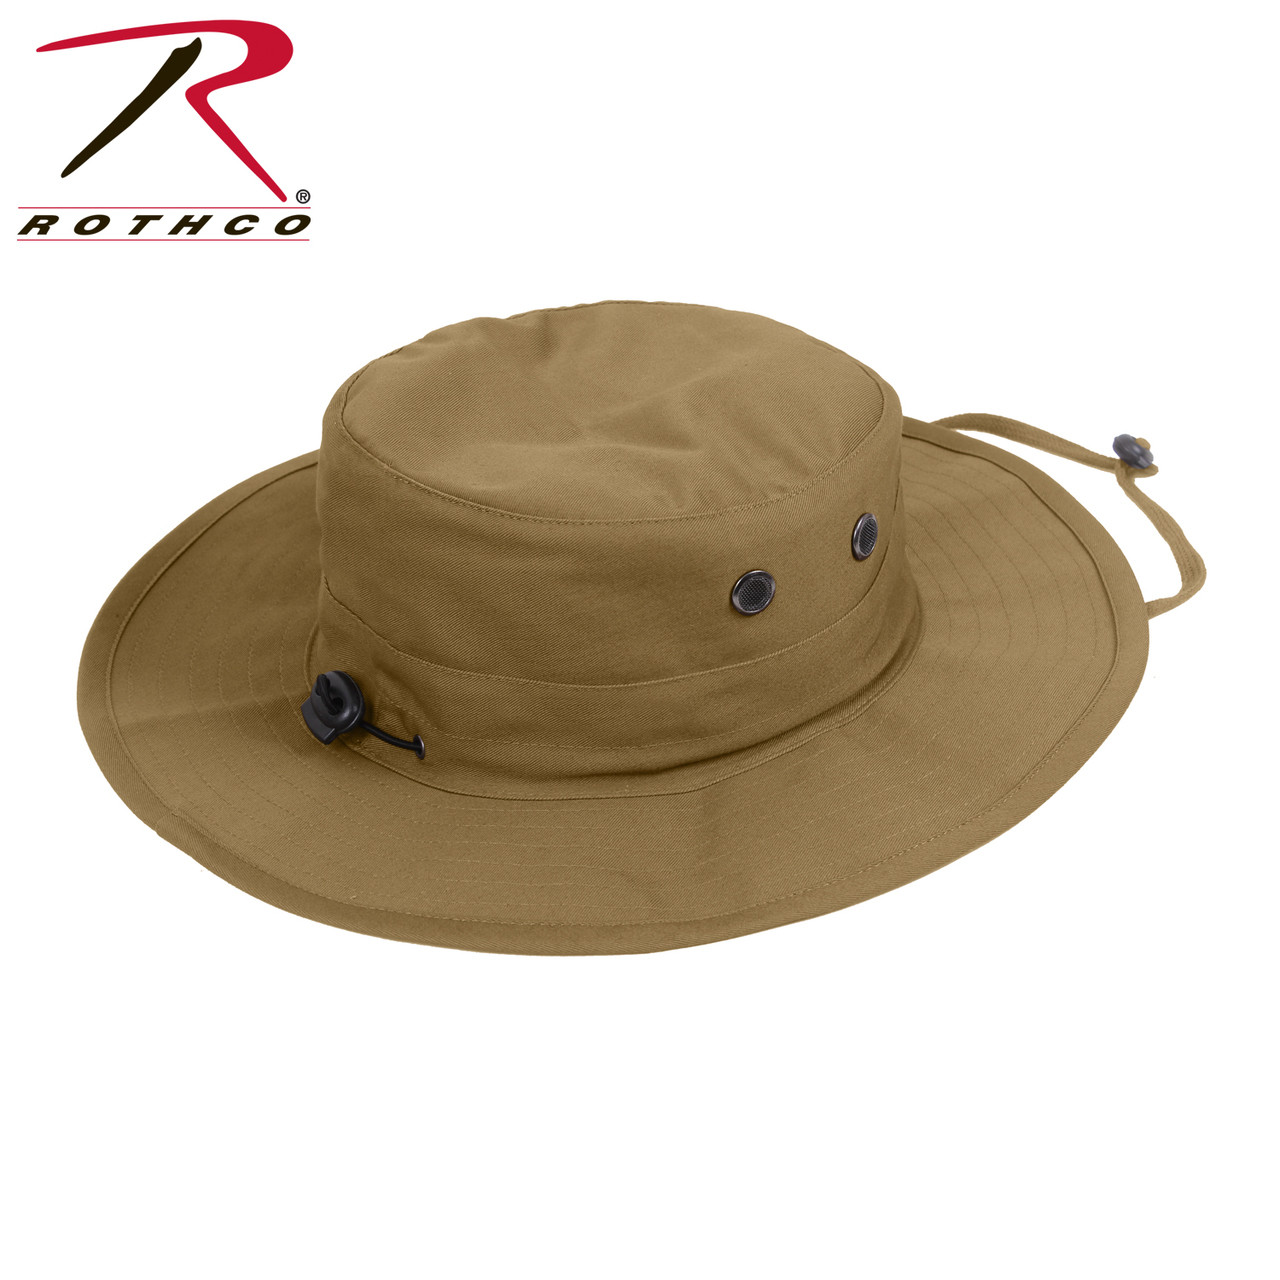 a182f2d5fdb08 Rothco Adjustable Boonie Hat - Coyote Brown - Hero Outdoors